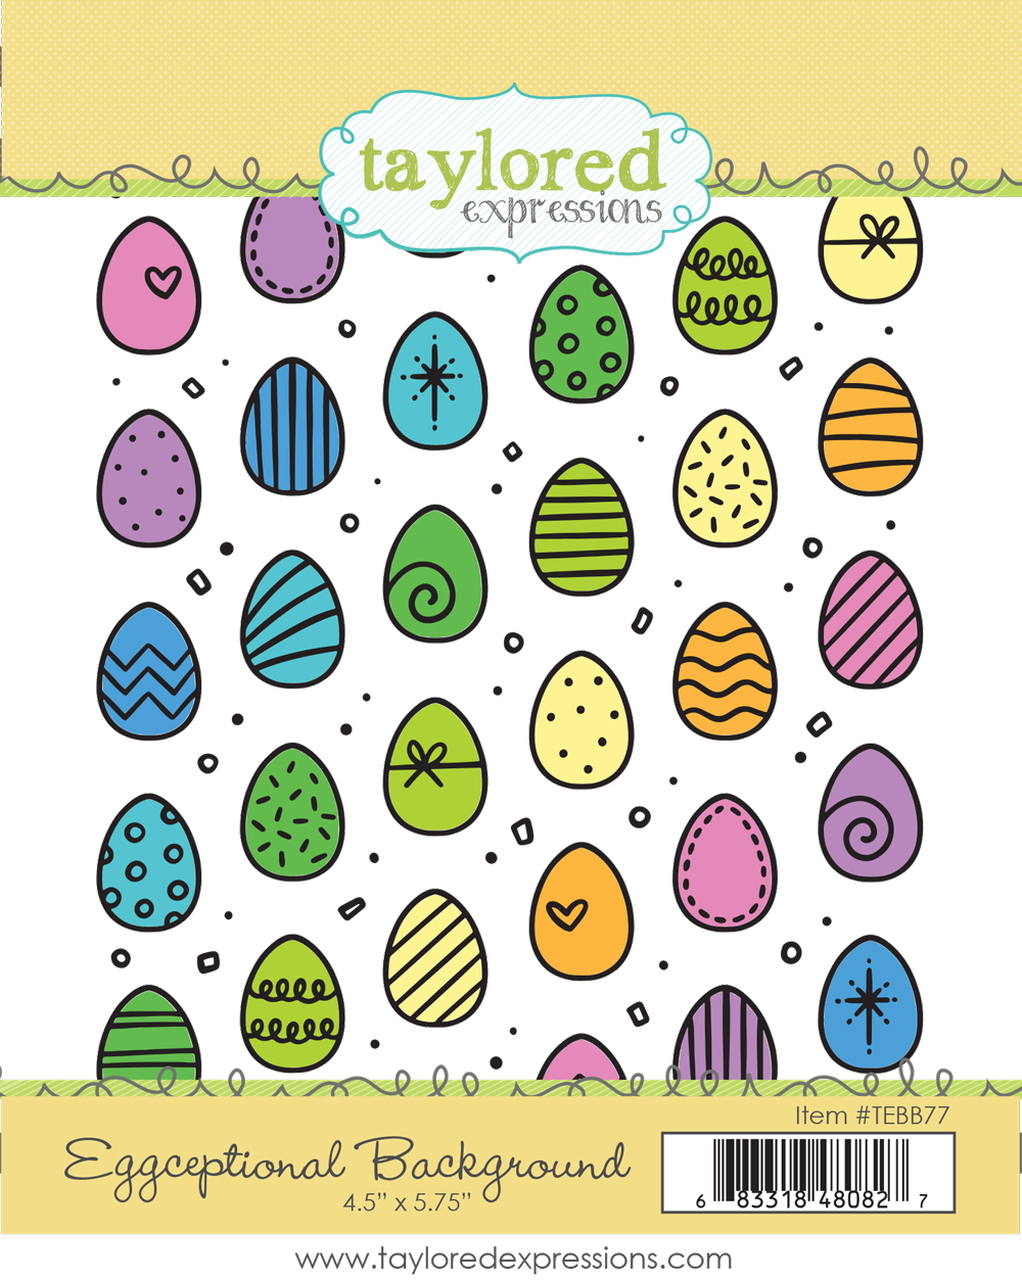 Taylored Expression - Eggceptional Background